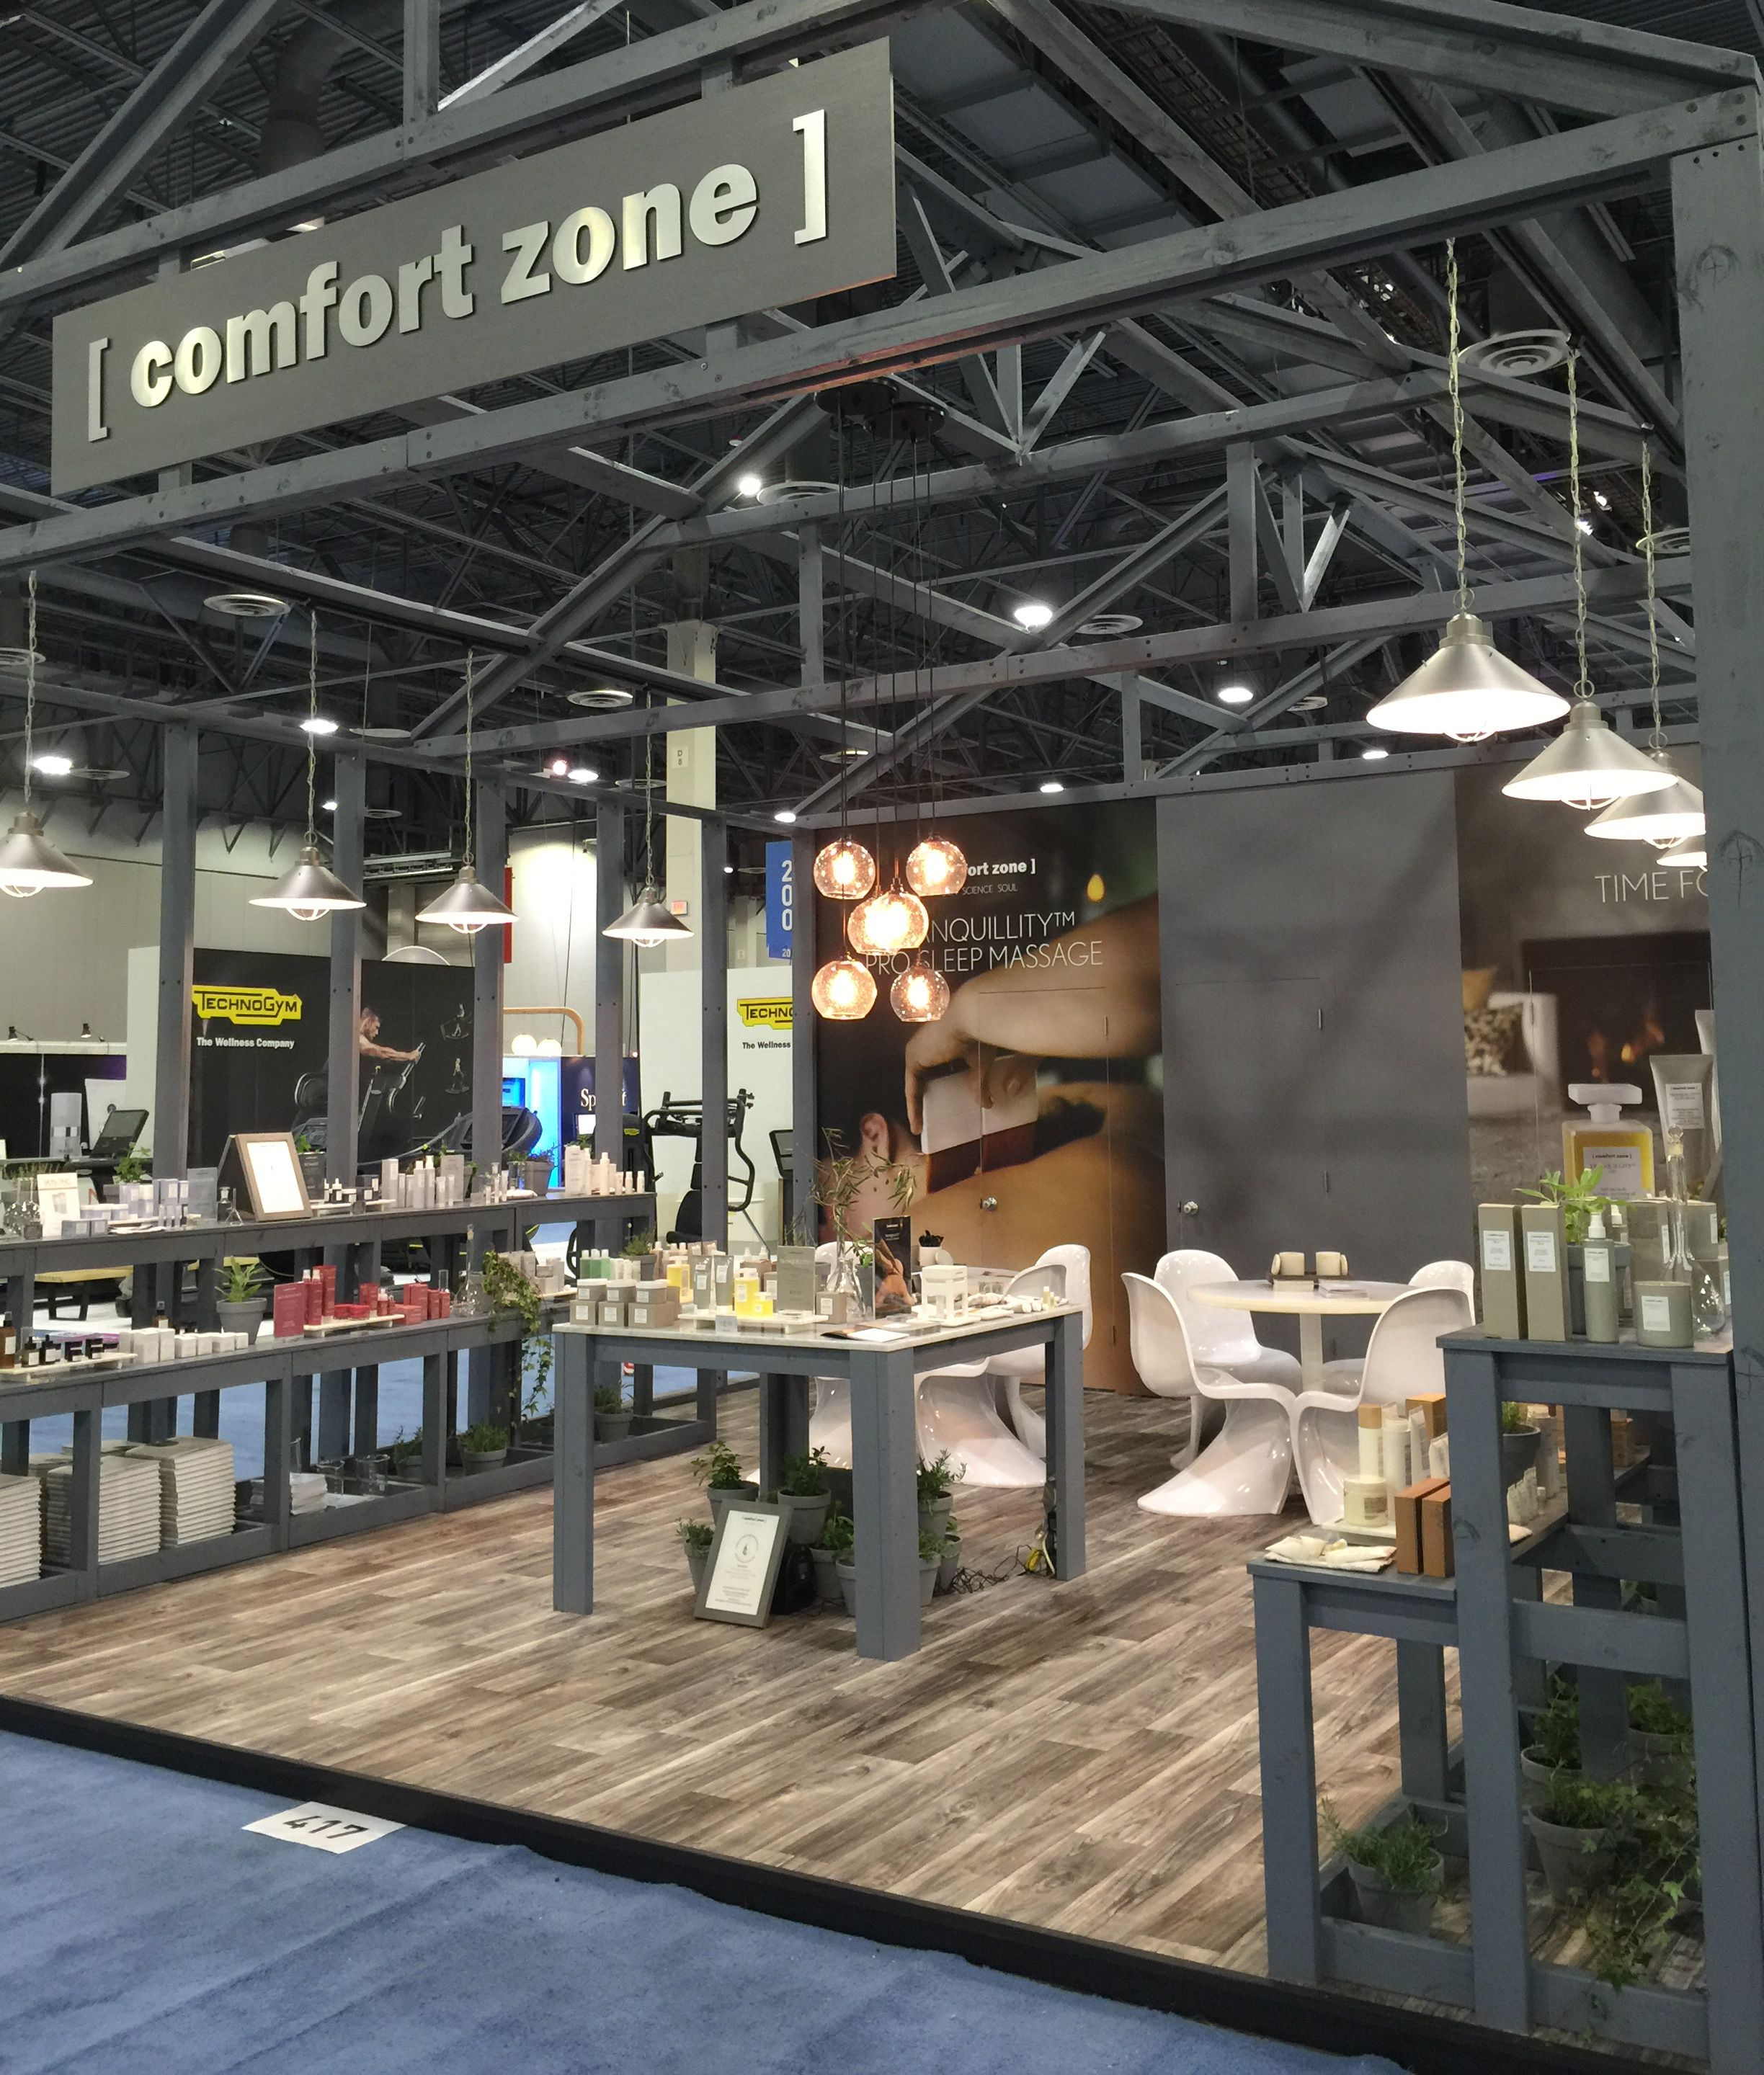 Sungard Exhibition Stand Zone : Comfort zone booth built by exhibitfair http efiinc